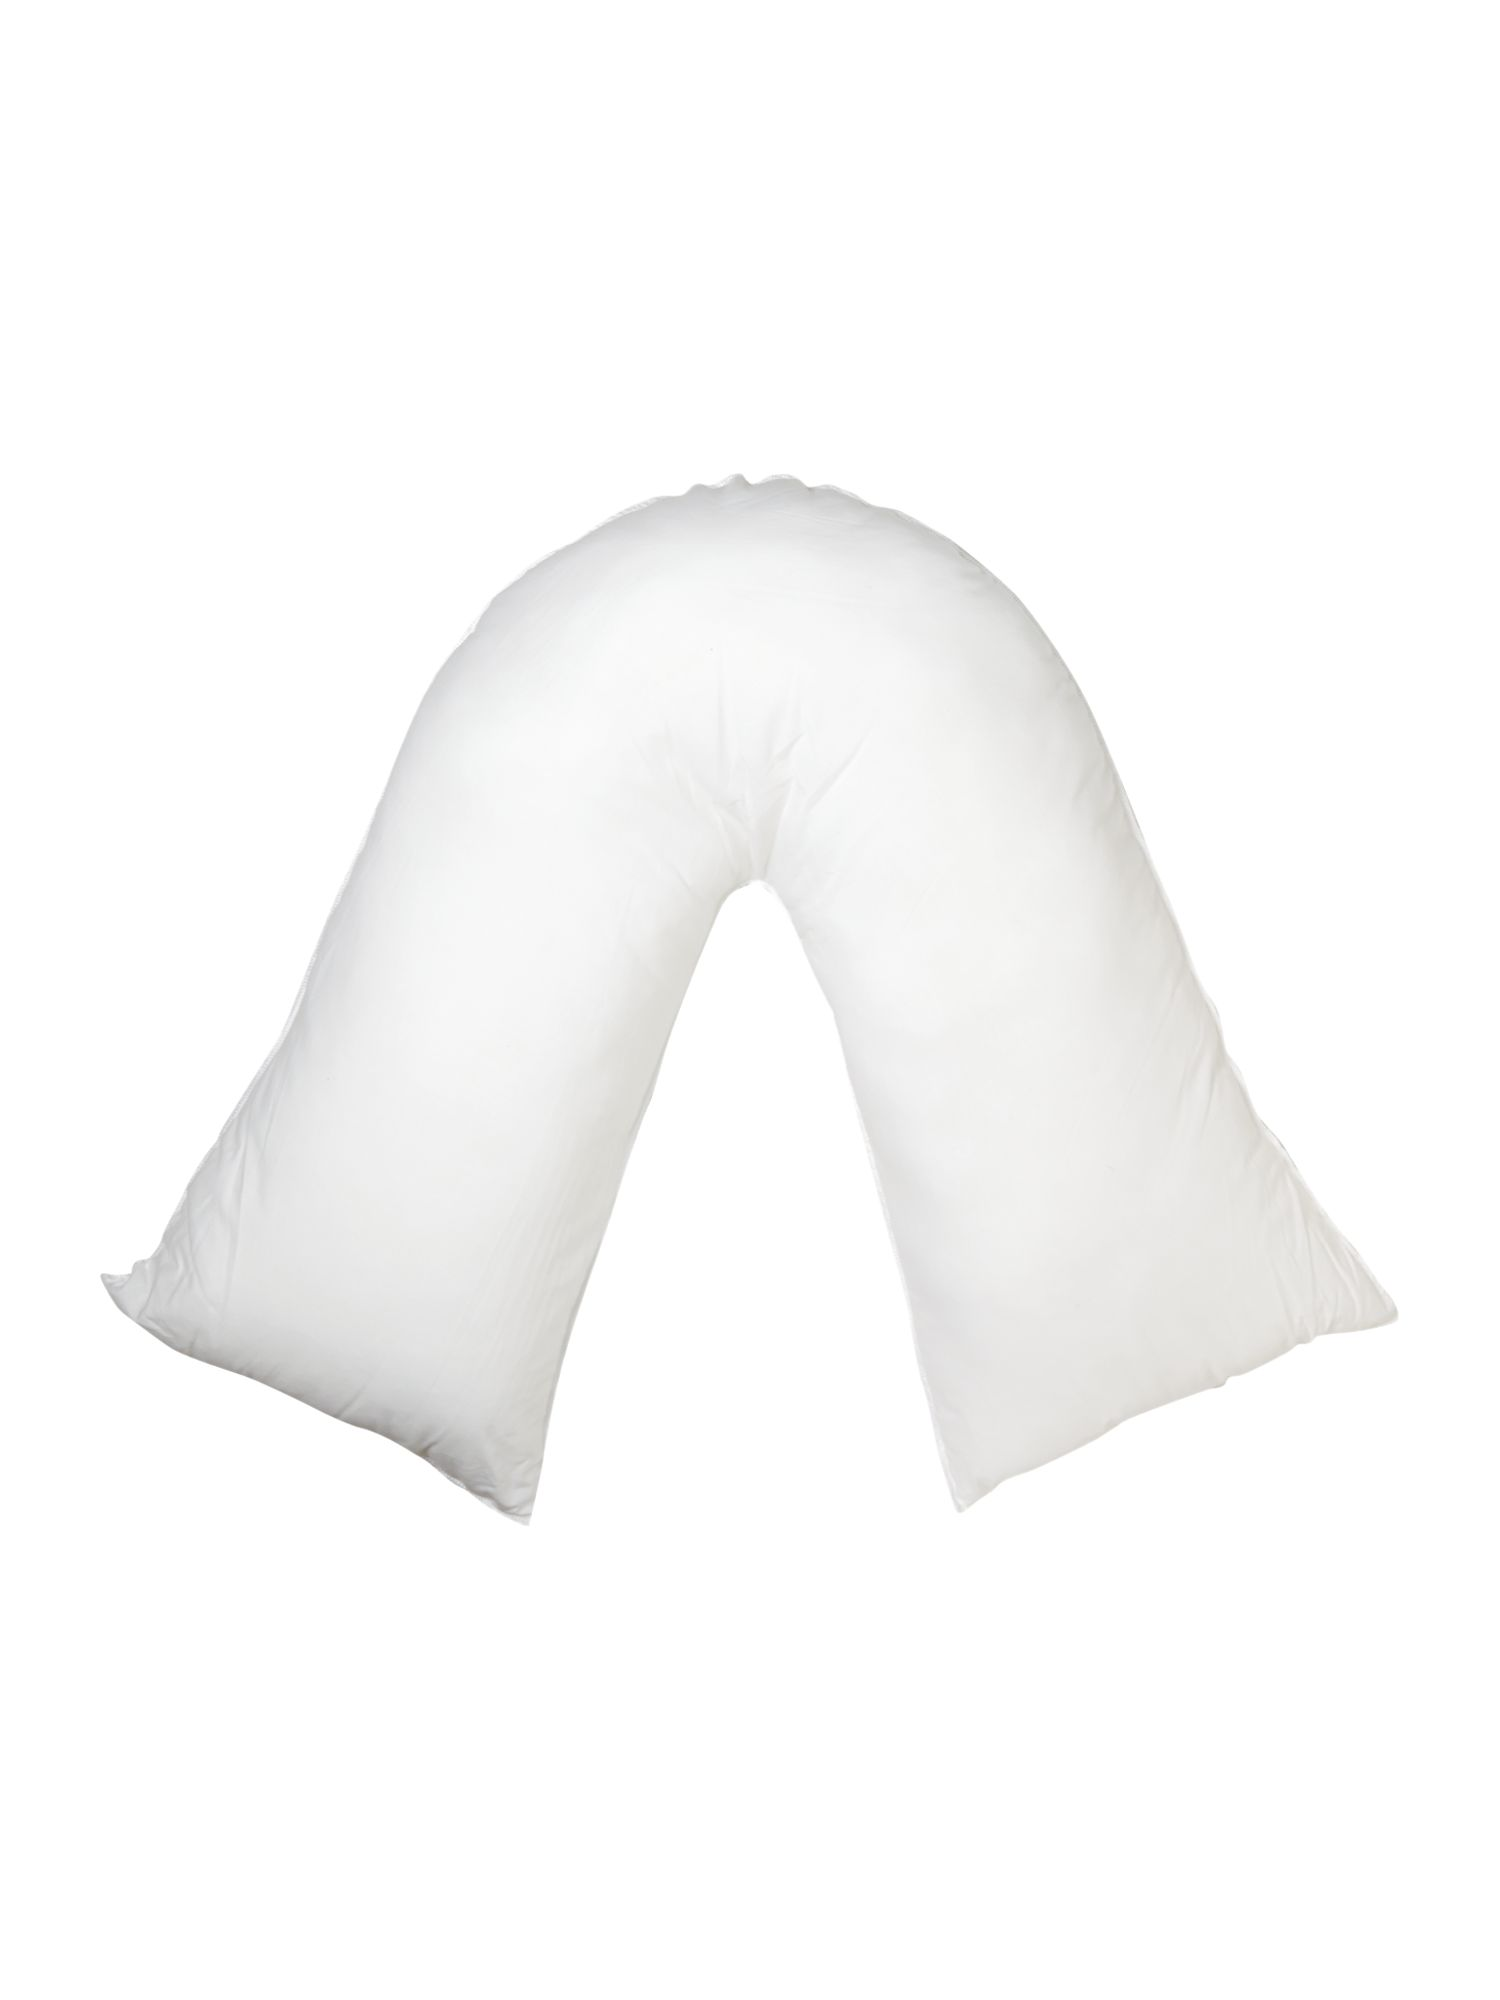 V-shaped posture support pillow